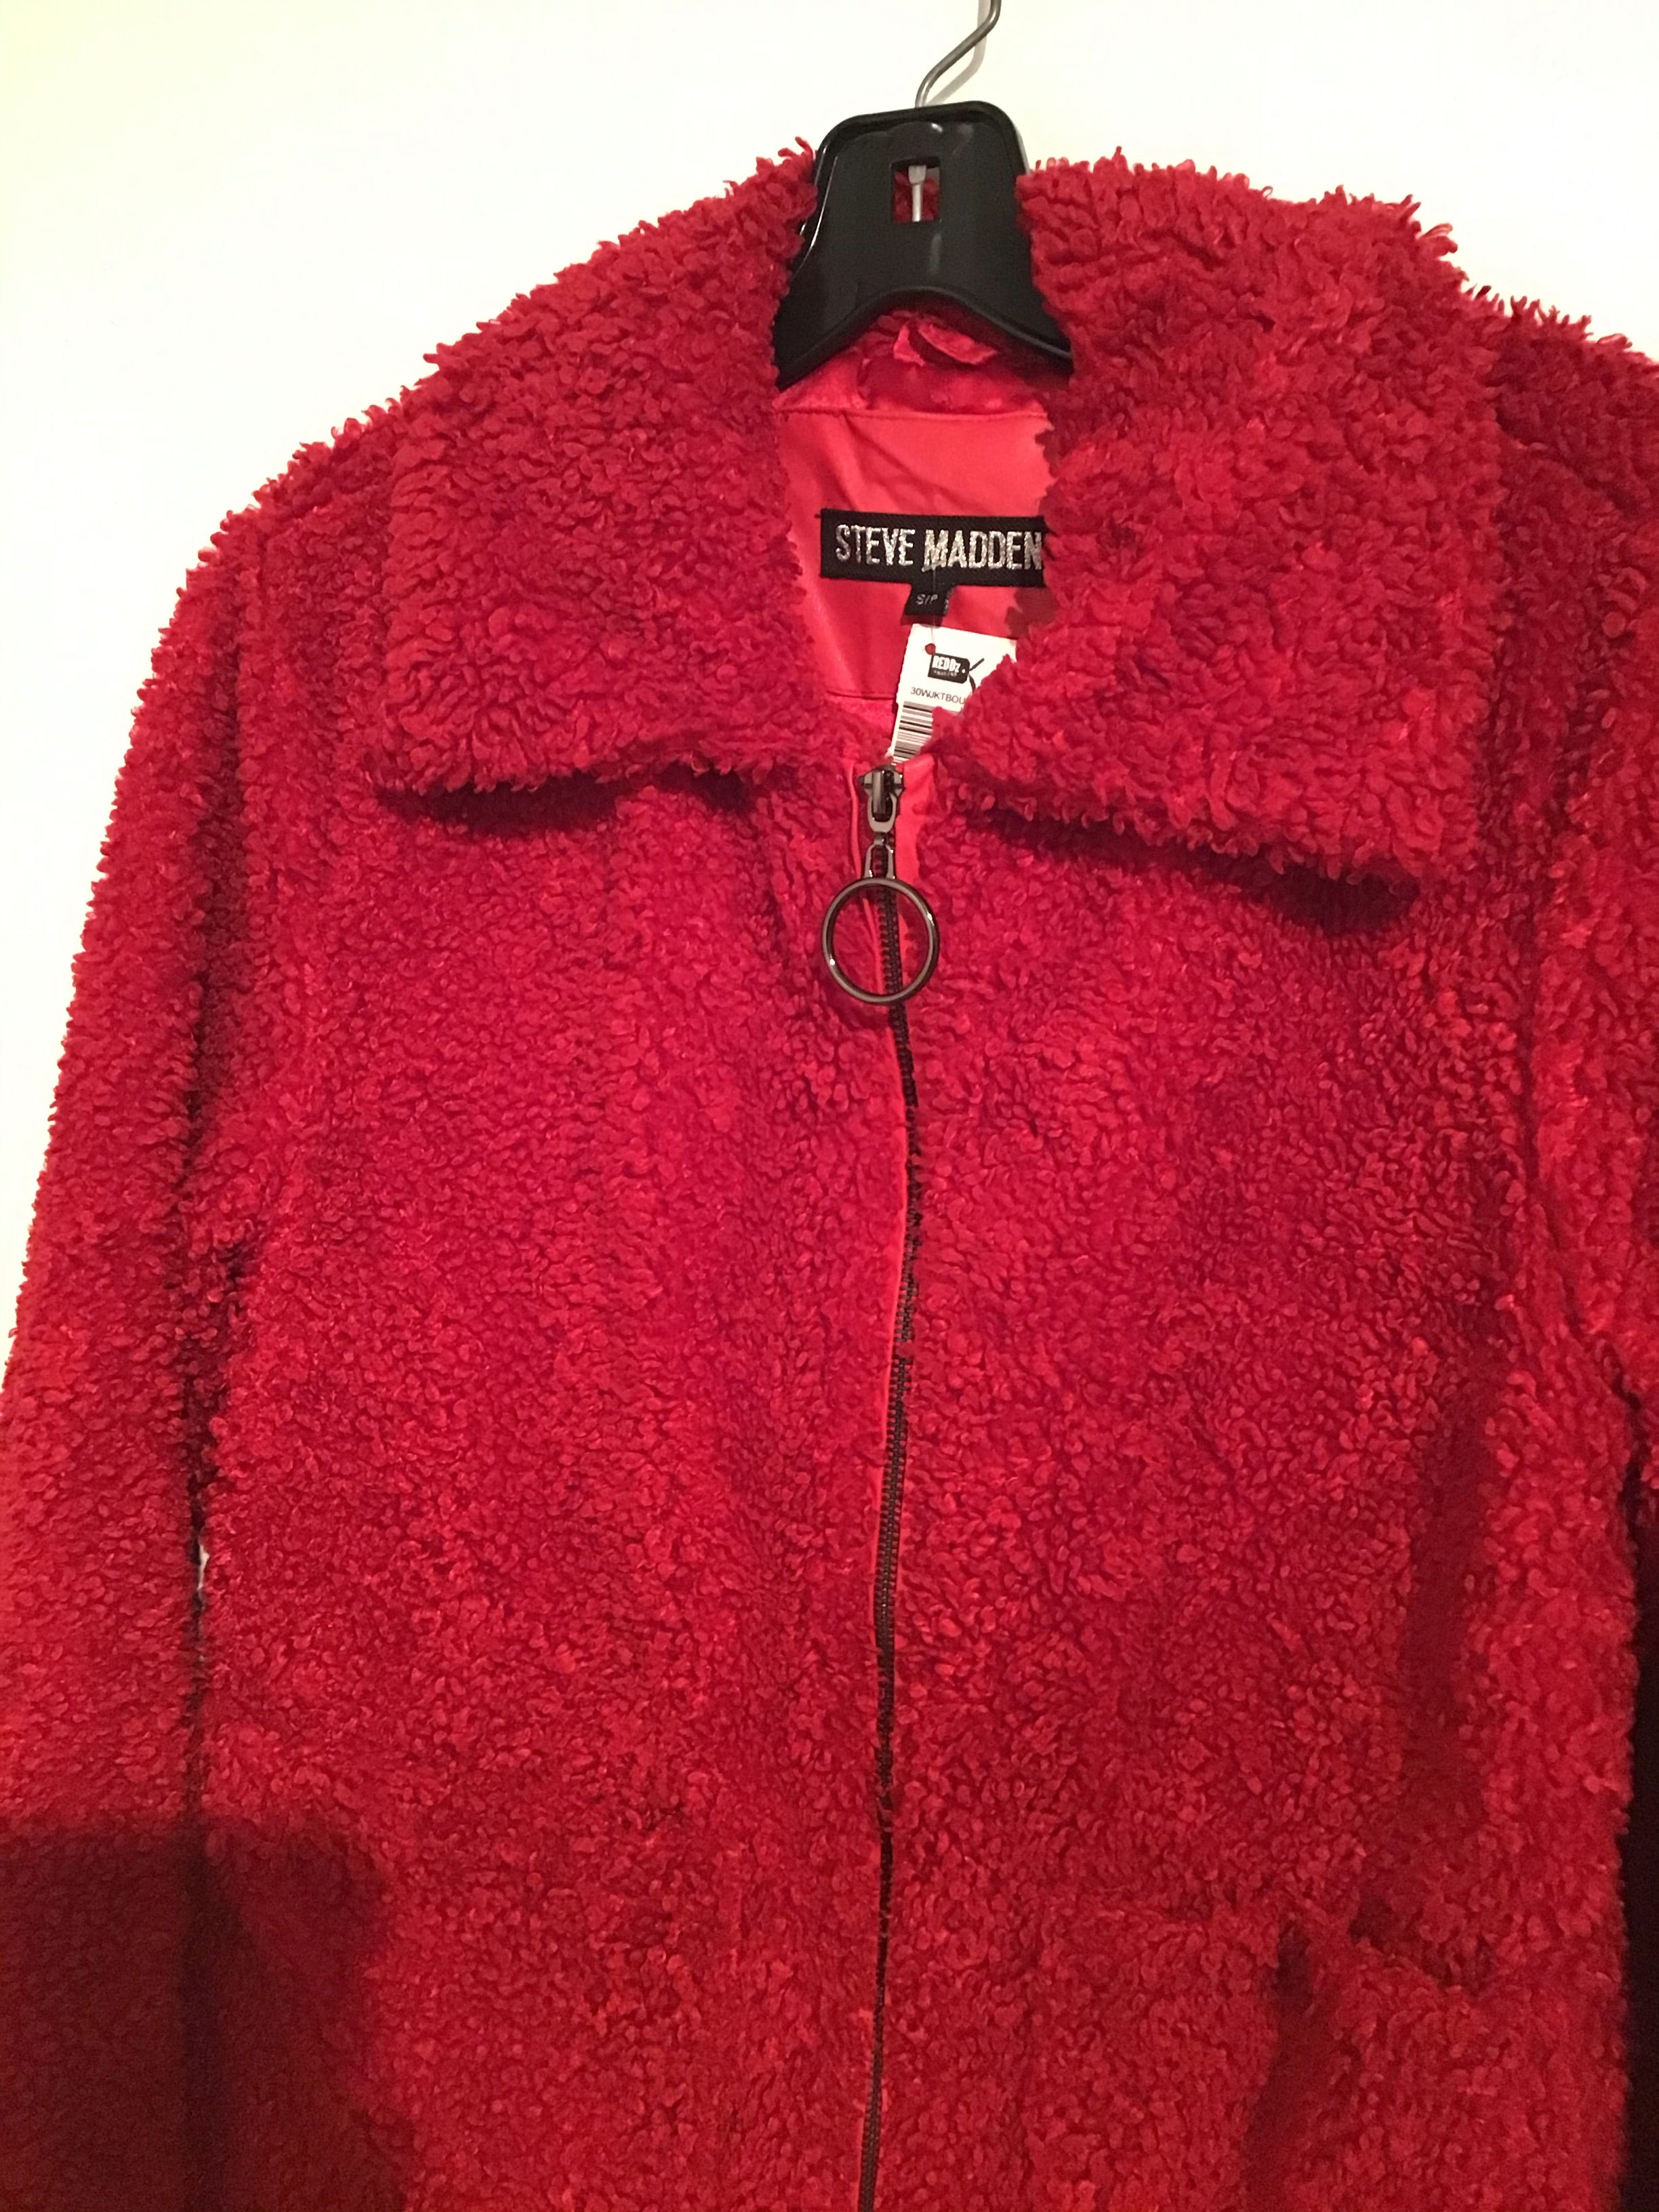 Steve Madden red faux fur zip up fleece